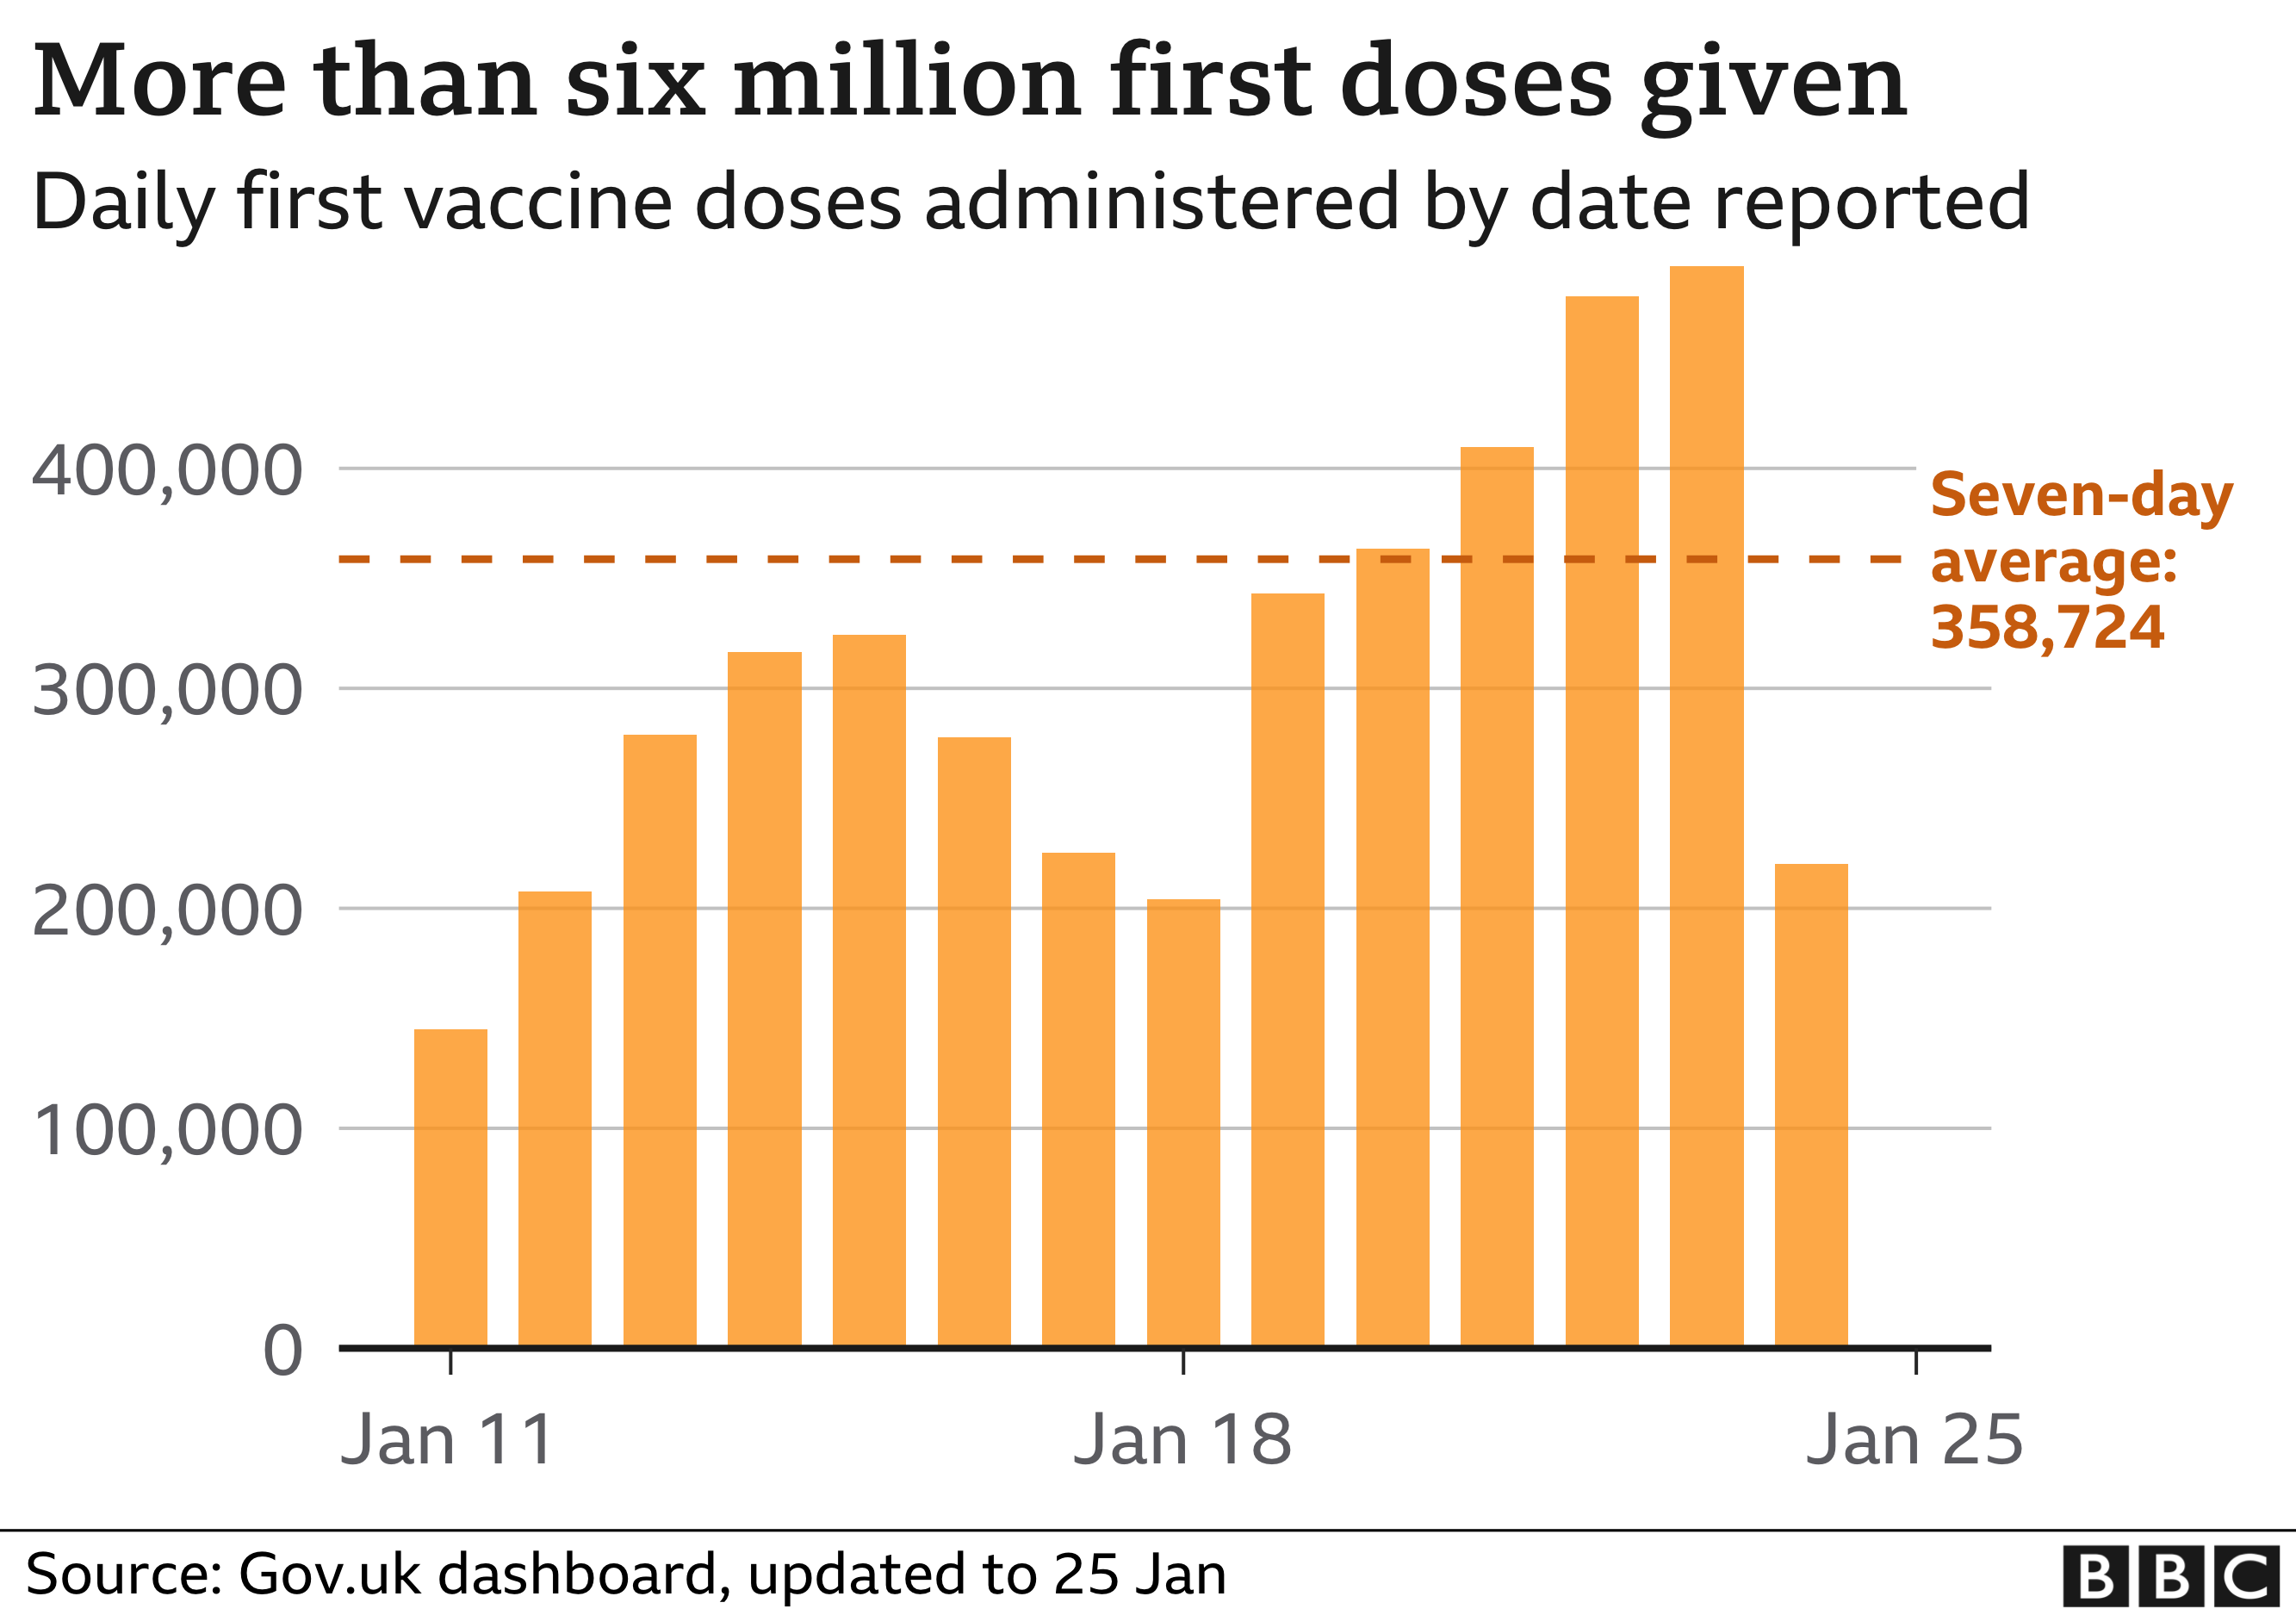 Chart showing more than six million first doses have been given